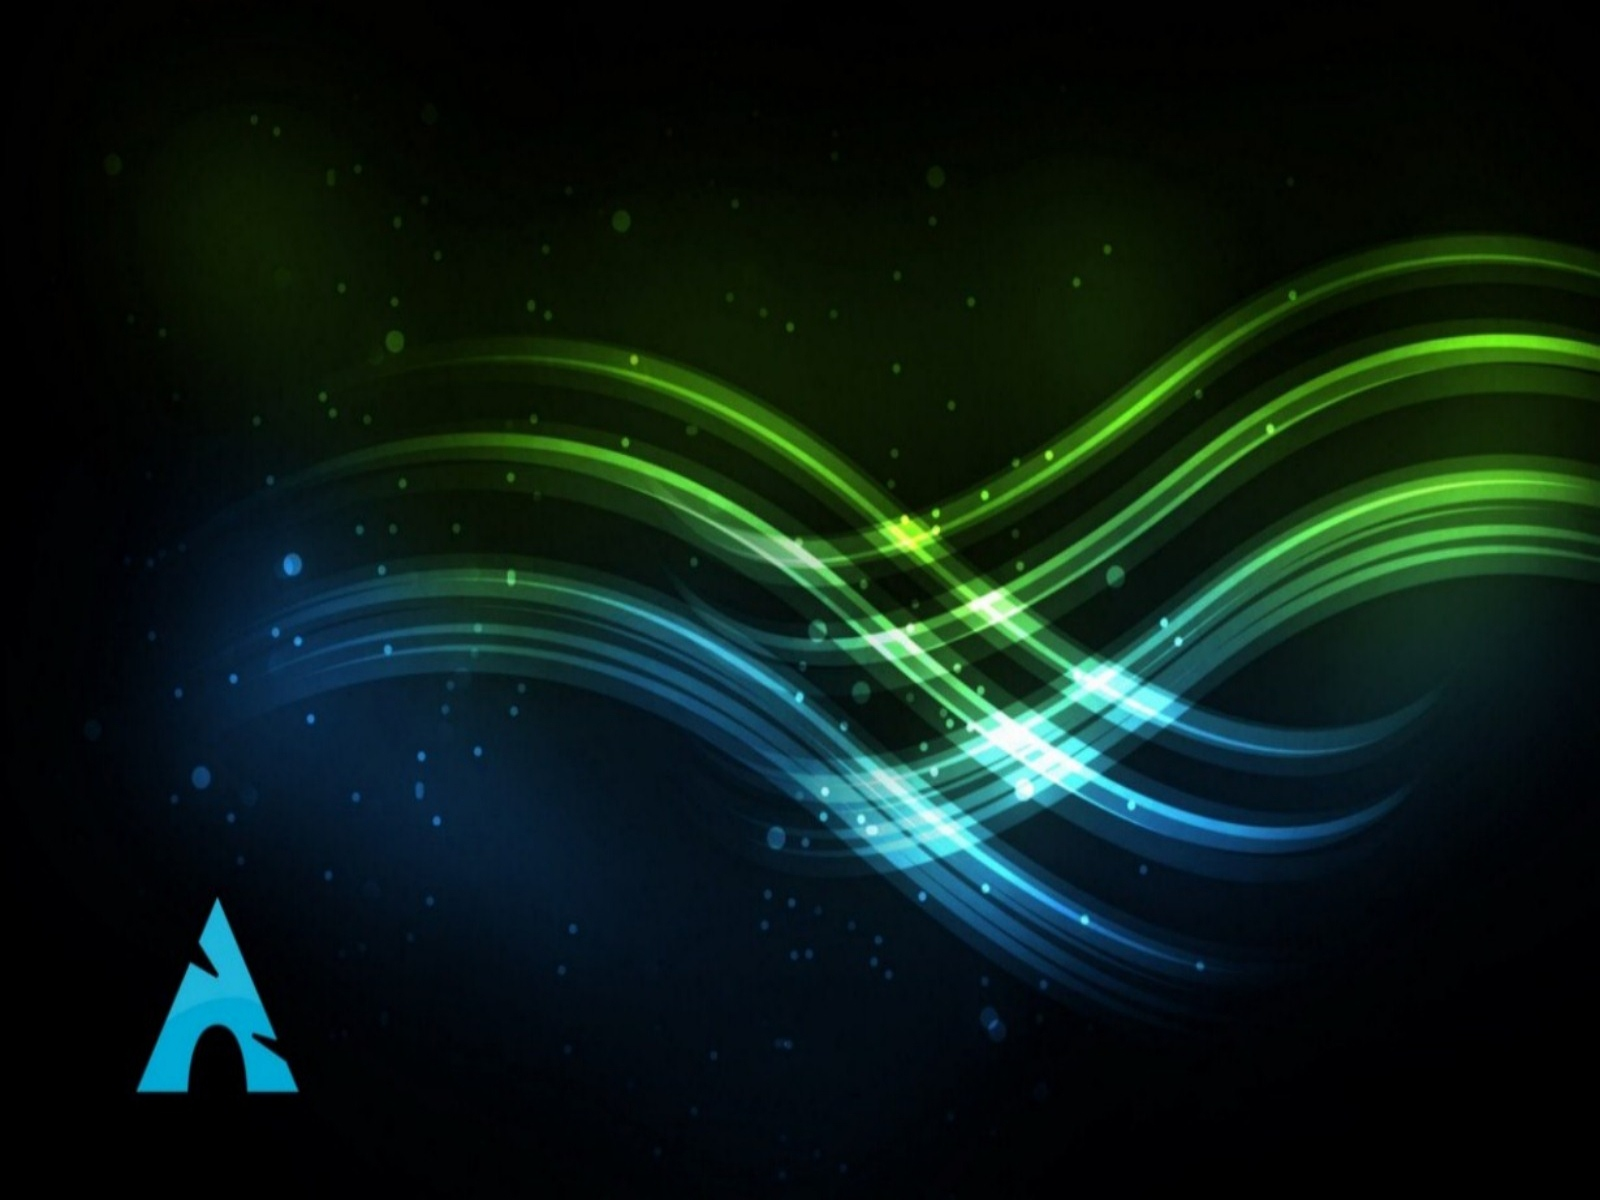 installing arch linux wallpapers arch linux wide background otherjpg 1600x1200